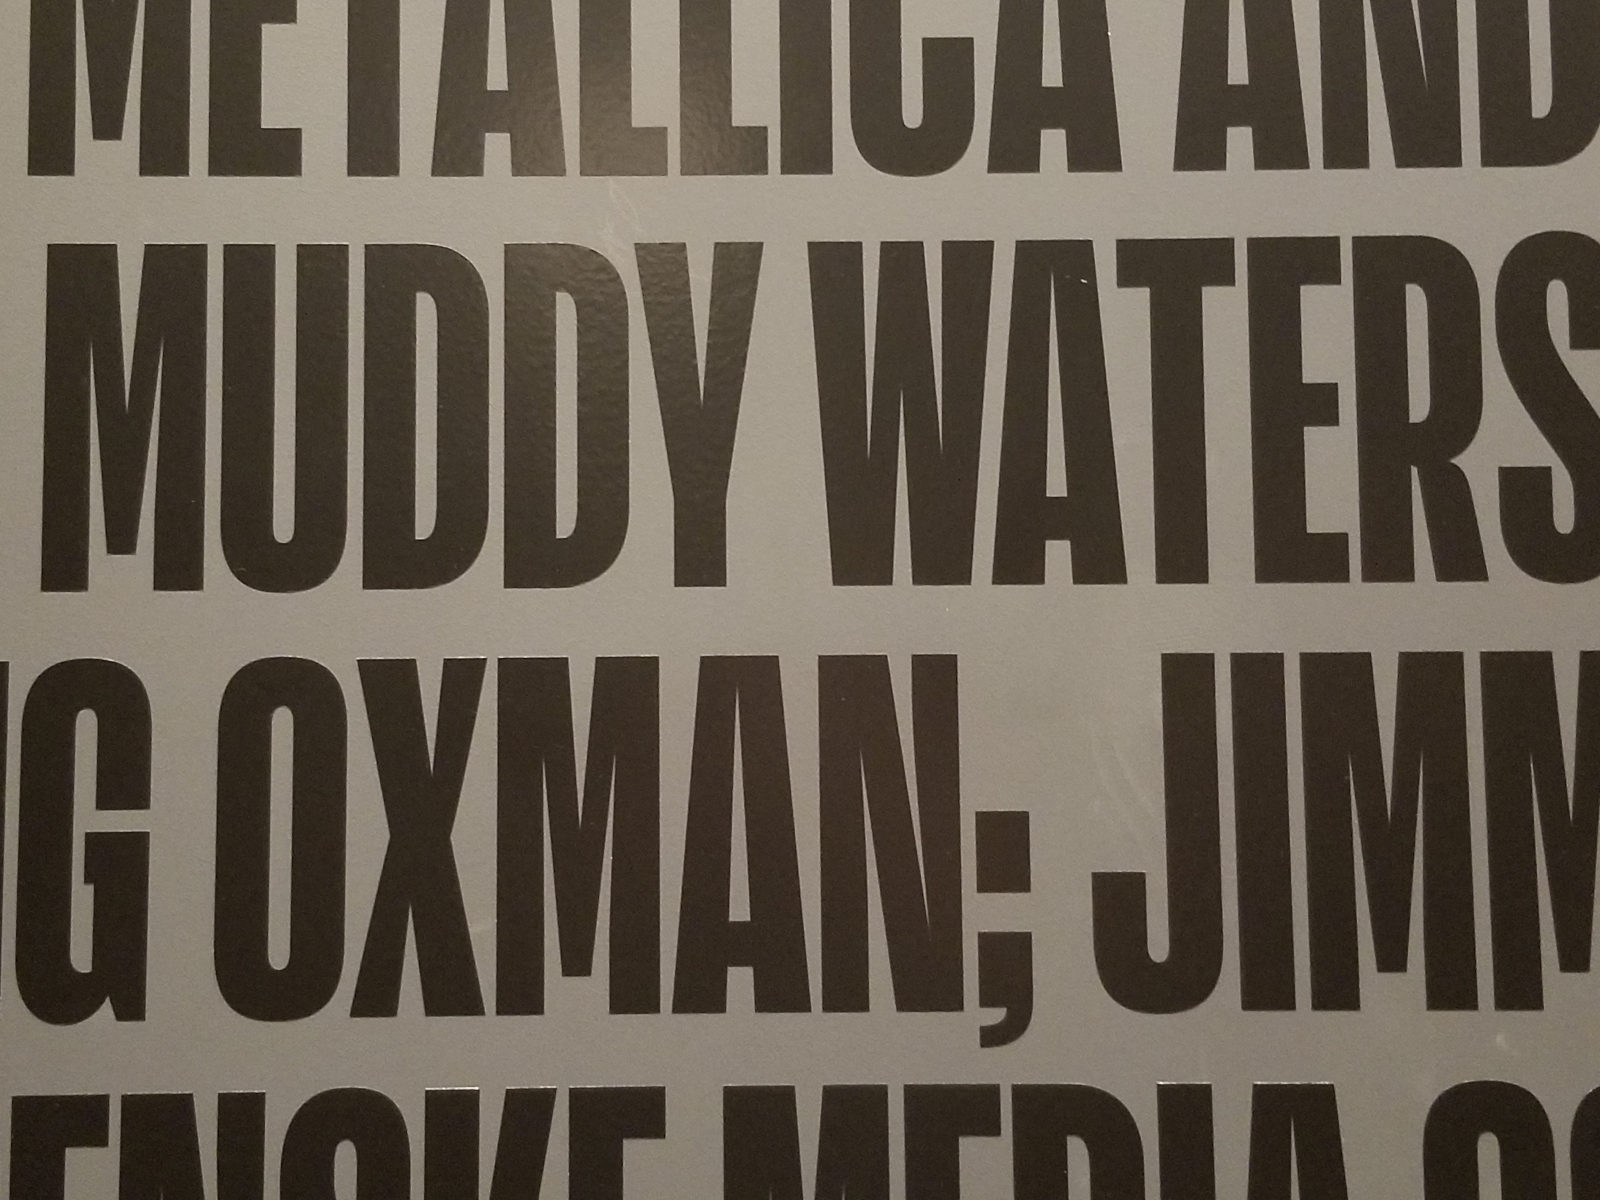 poster including muddy waters's name